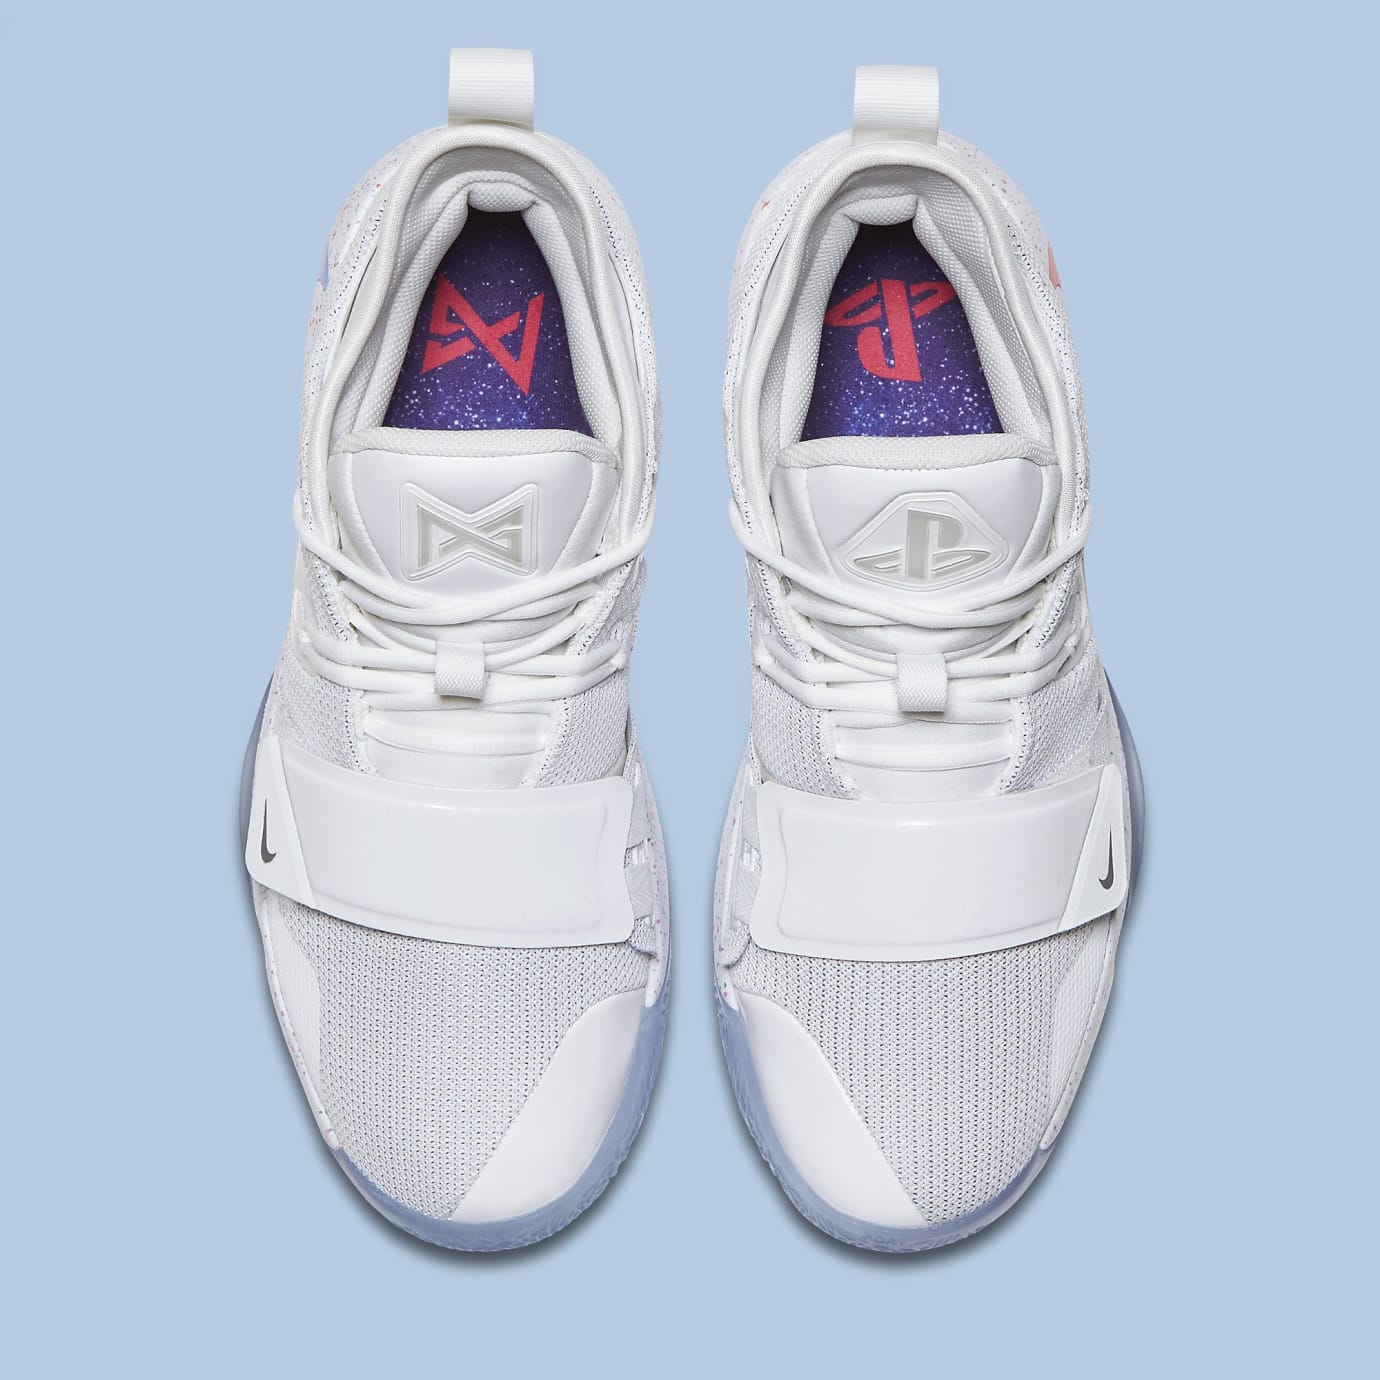 Nike PG 2.5 Playstation White Release Date BQ8388-100 Top